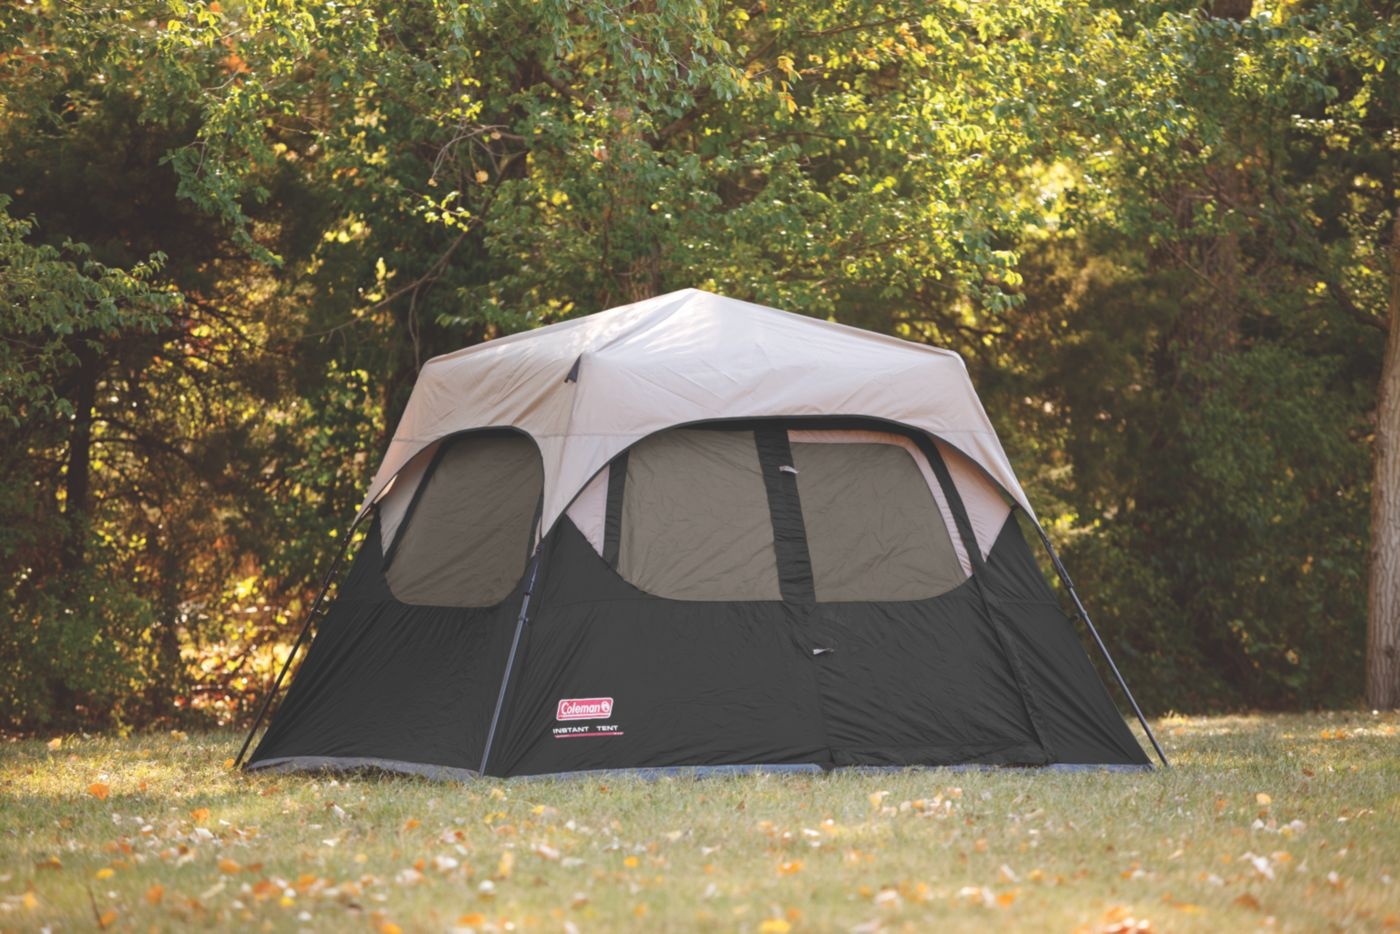 4-Person Instant Tent Rainfly Accessory  sc 1 st  Coleman & Instant Tent Rainfly Accessory for 4-Person Tent